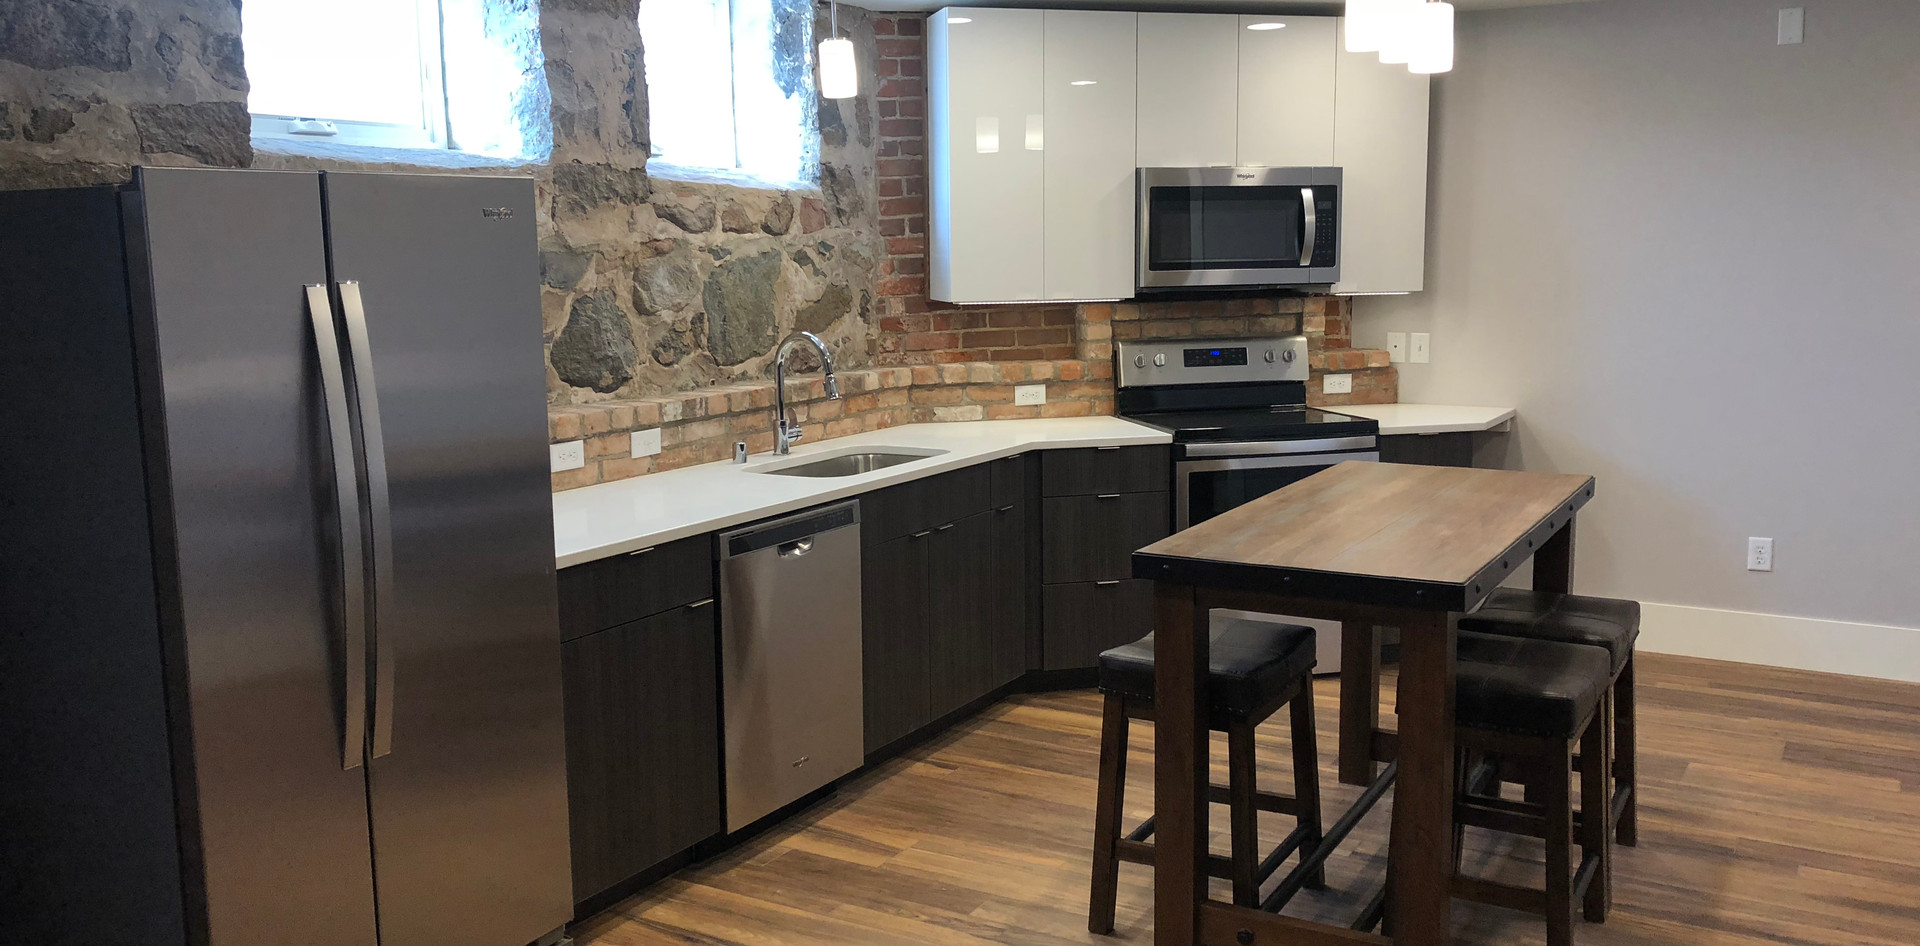 Redstone Lofts 100 Kitchen.JPG